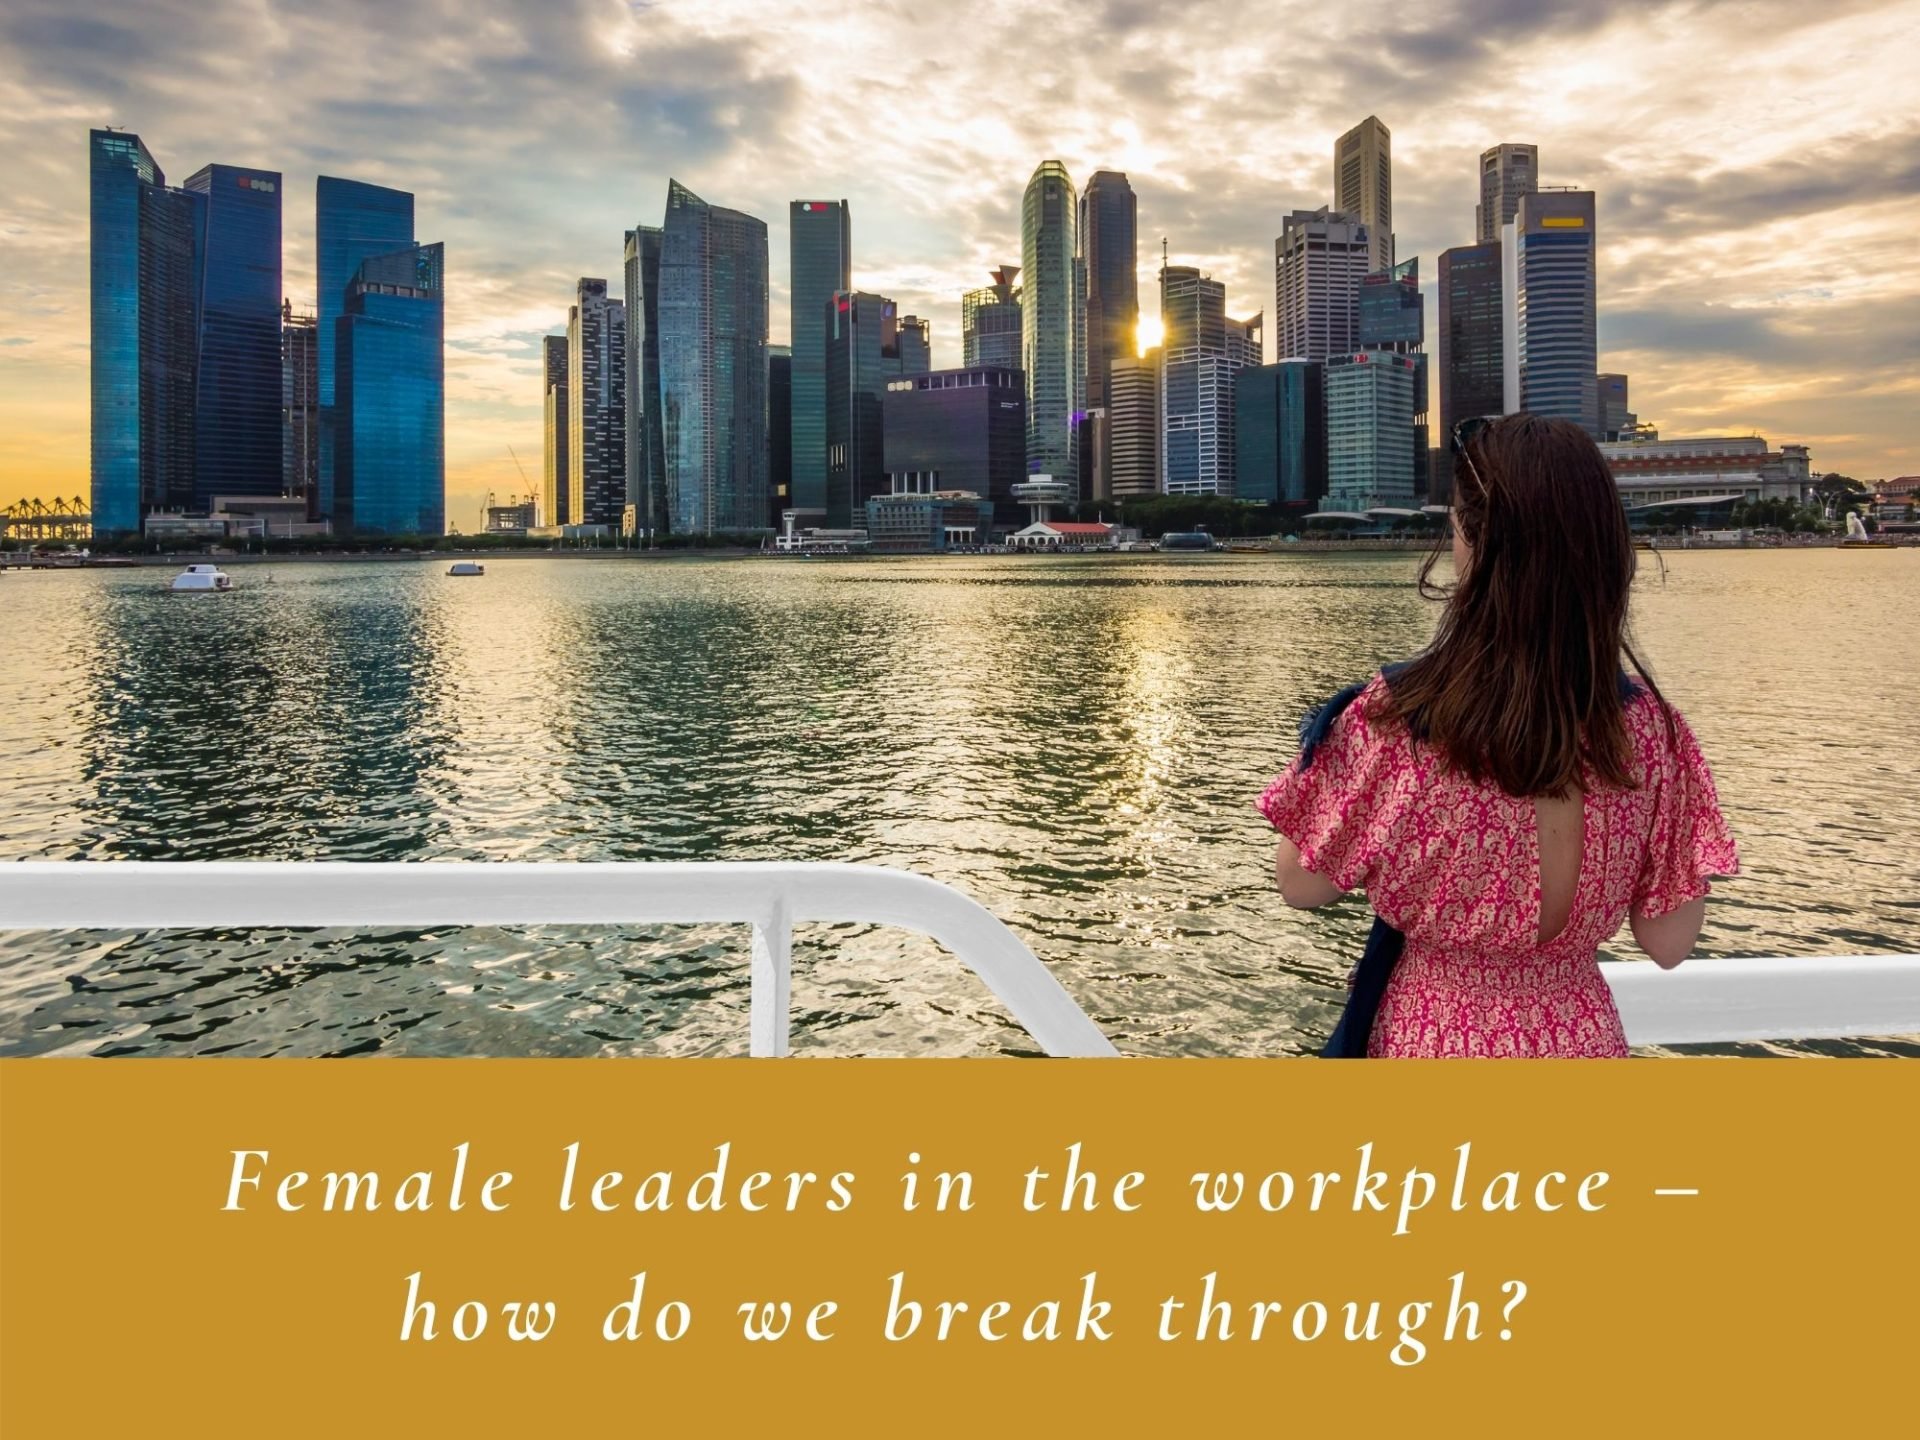 female leaders in the workplace - BRAVING BOUNDARIES